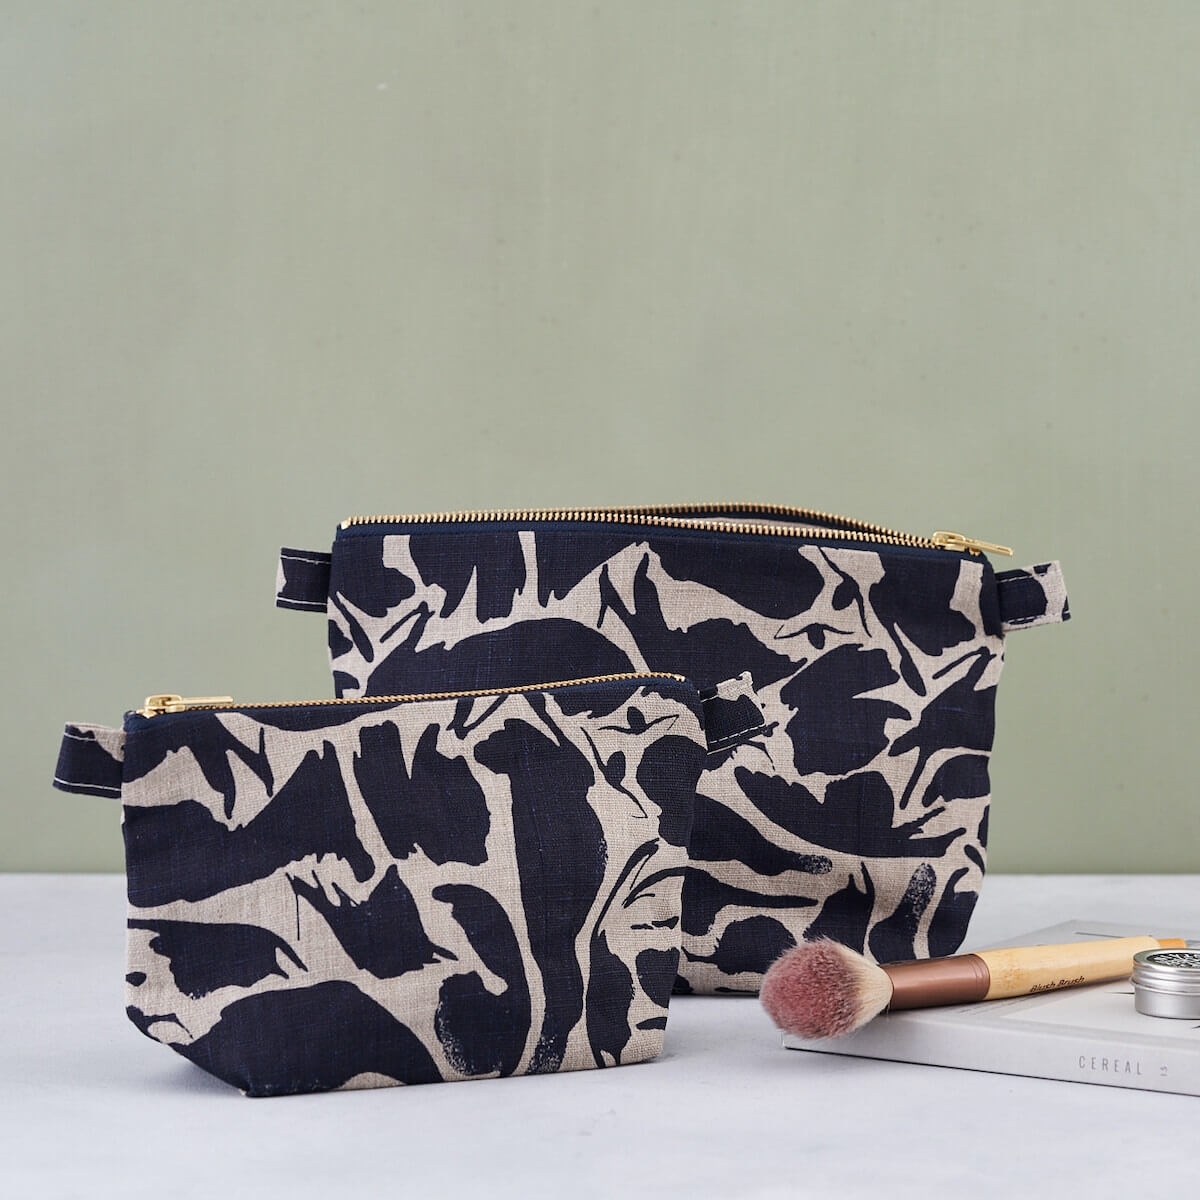 linen toiletry bags with navy print